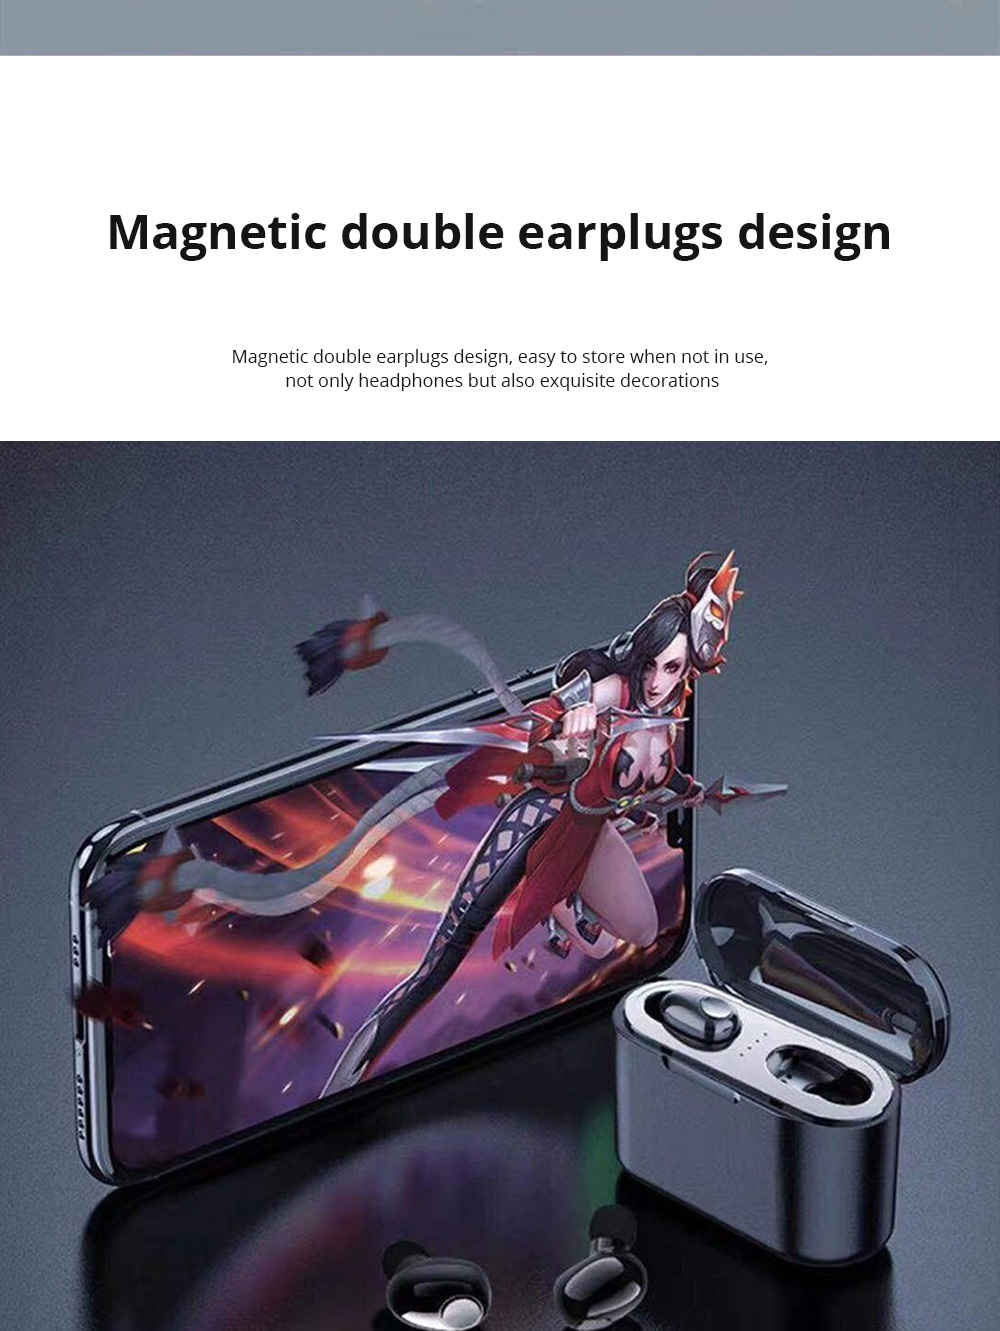 Customization Black Loomoo T8 Earphone Bluetooth Headset Charging Compartment 2200 Capacity Light Compact Sound Quality Supports Hands-free Calling Gift  3